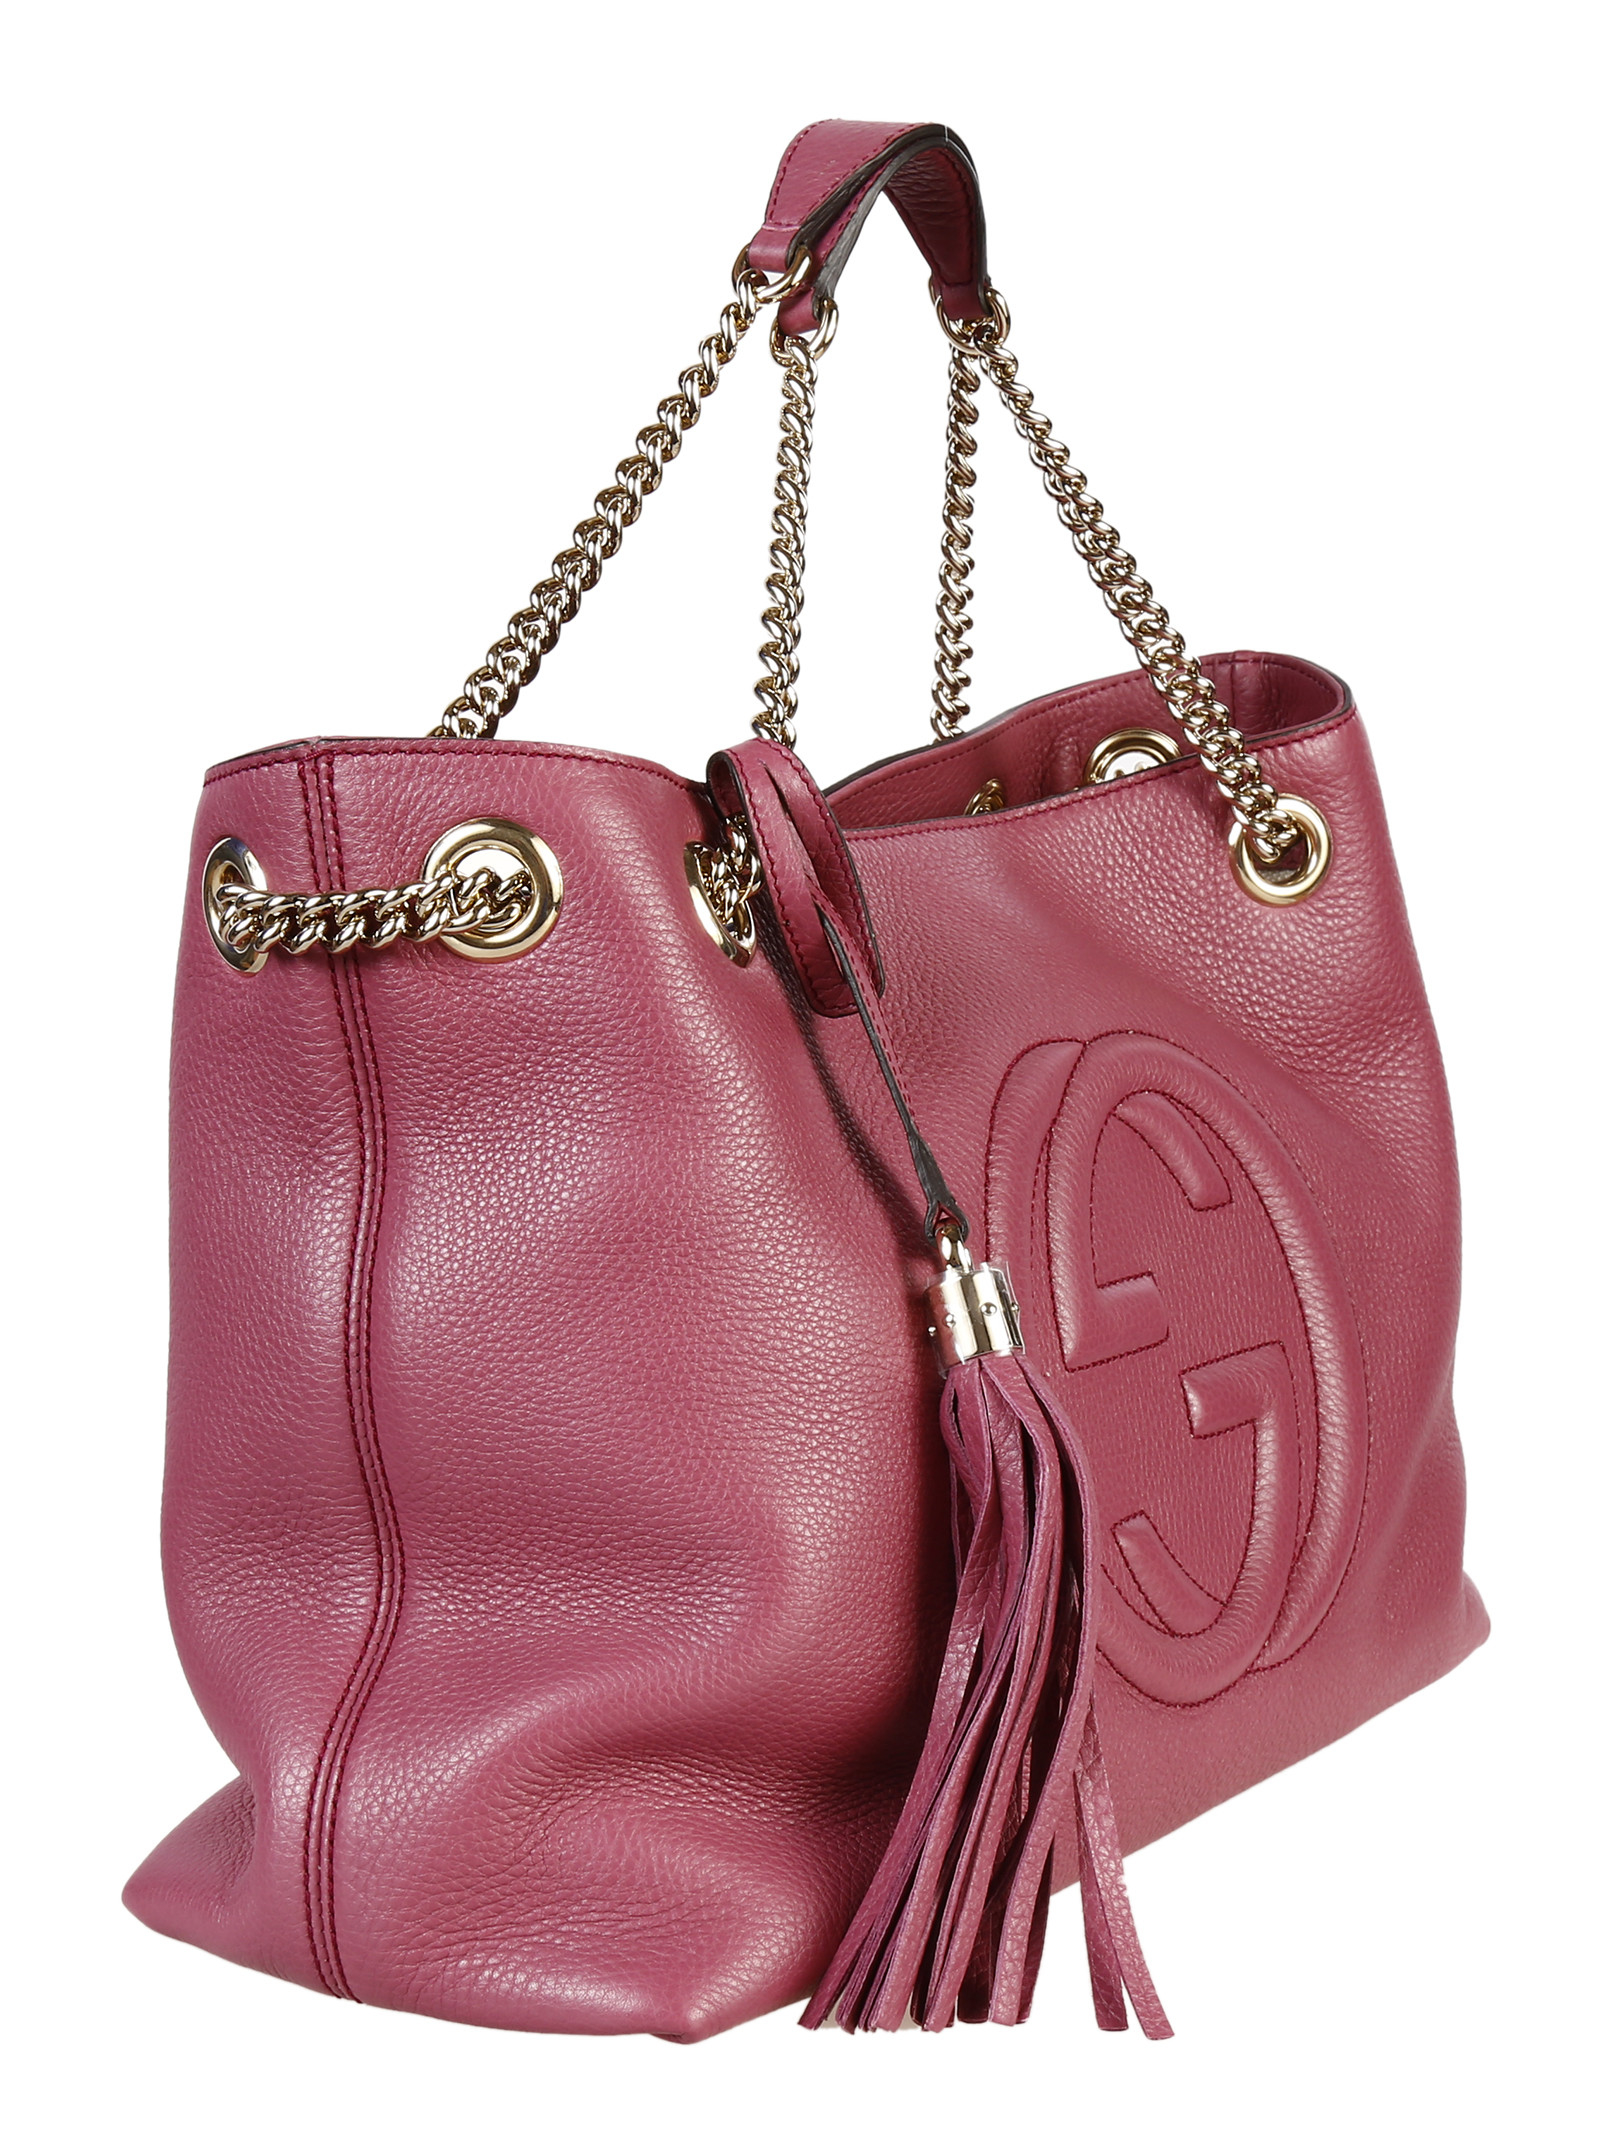 gucci soho leather medium shoulder bag in pink dusty rose lyst. Black Bedroom Furniture Sets. Home Design Ideas